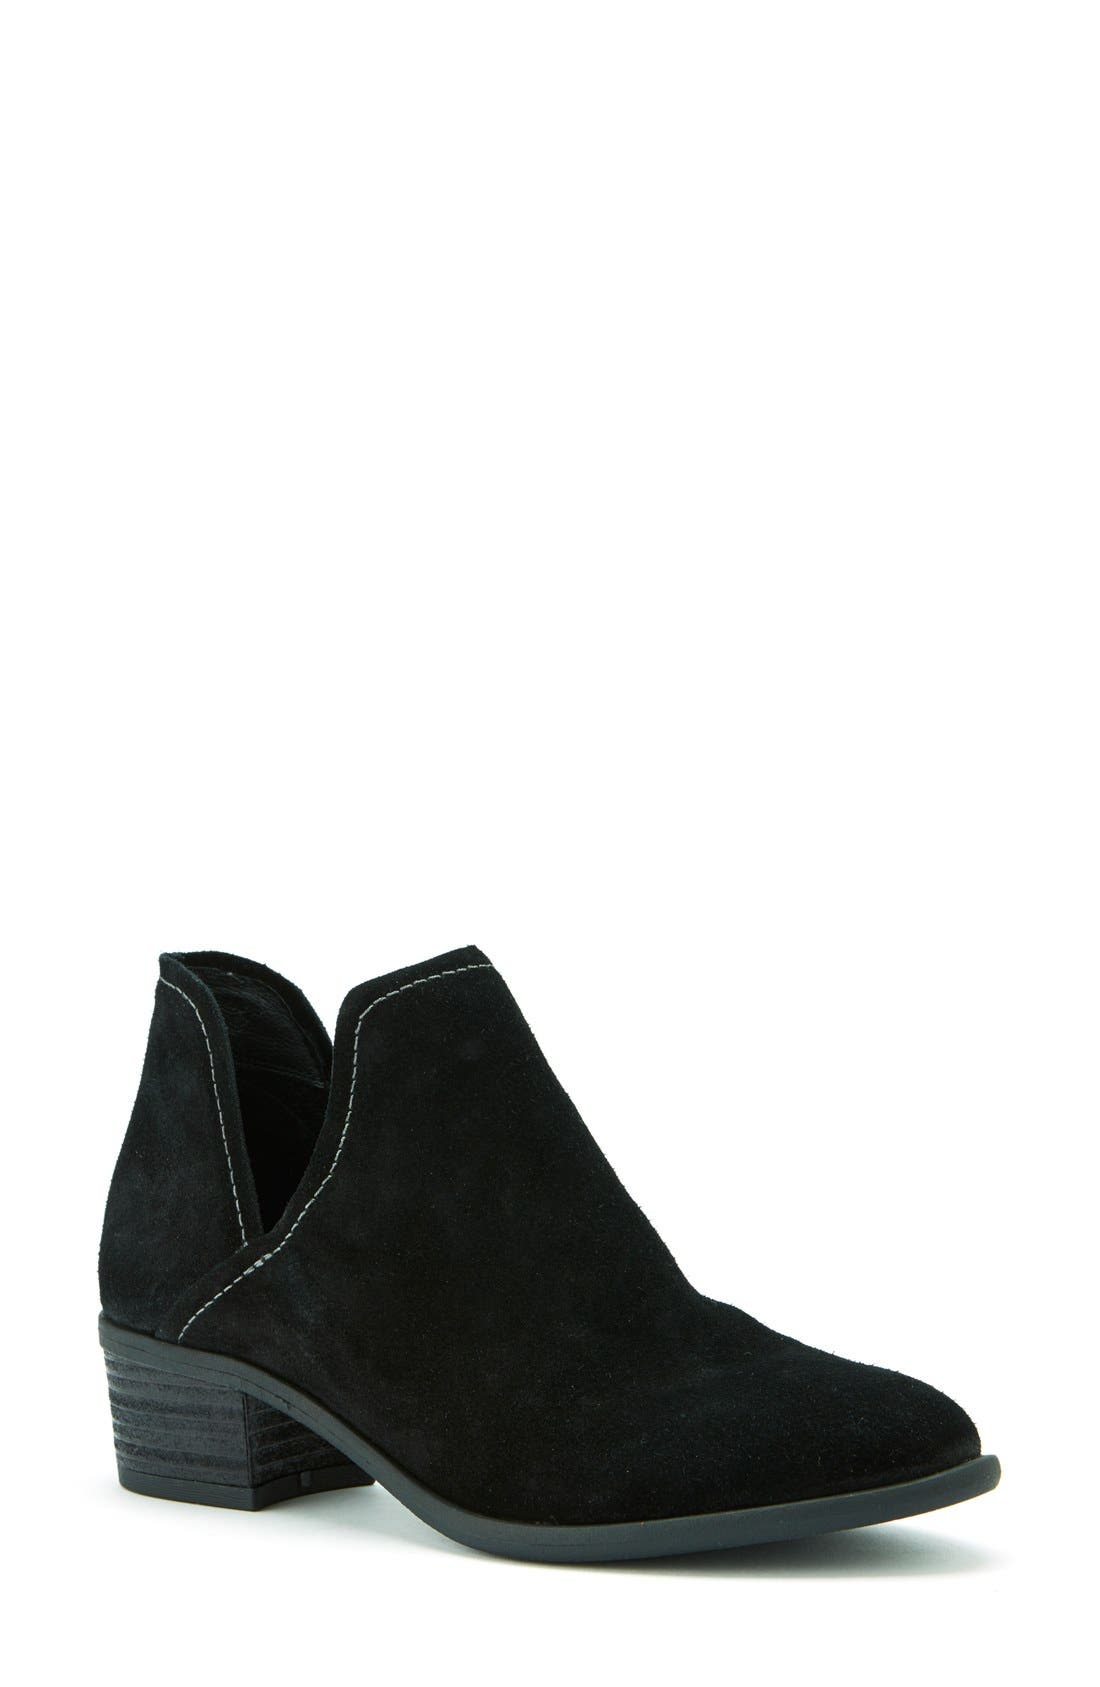 'Marcella' Waterproof  Boot,                             Main thumbnail 1, color,                             Black Suede